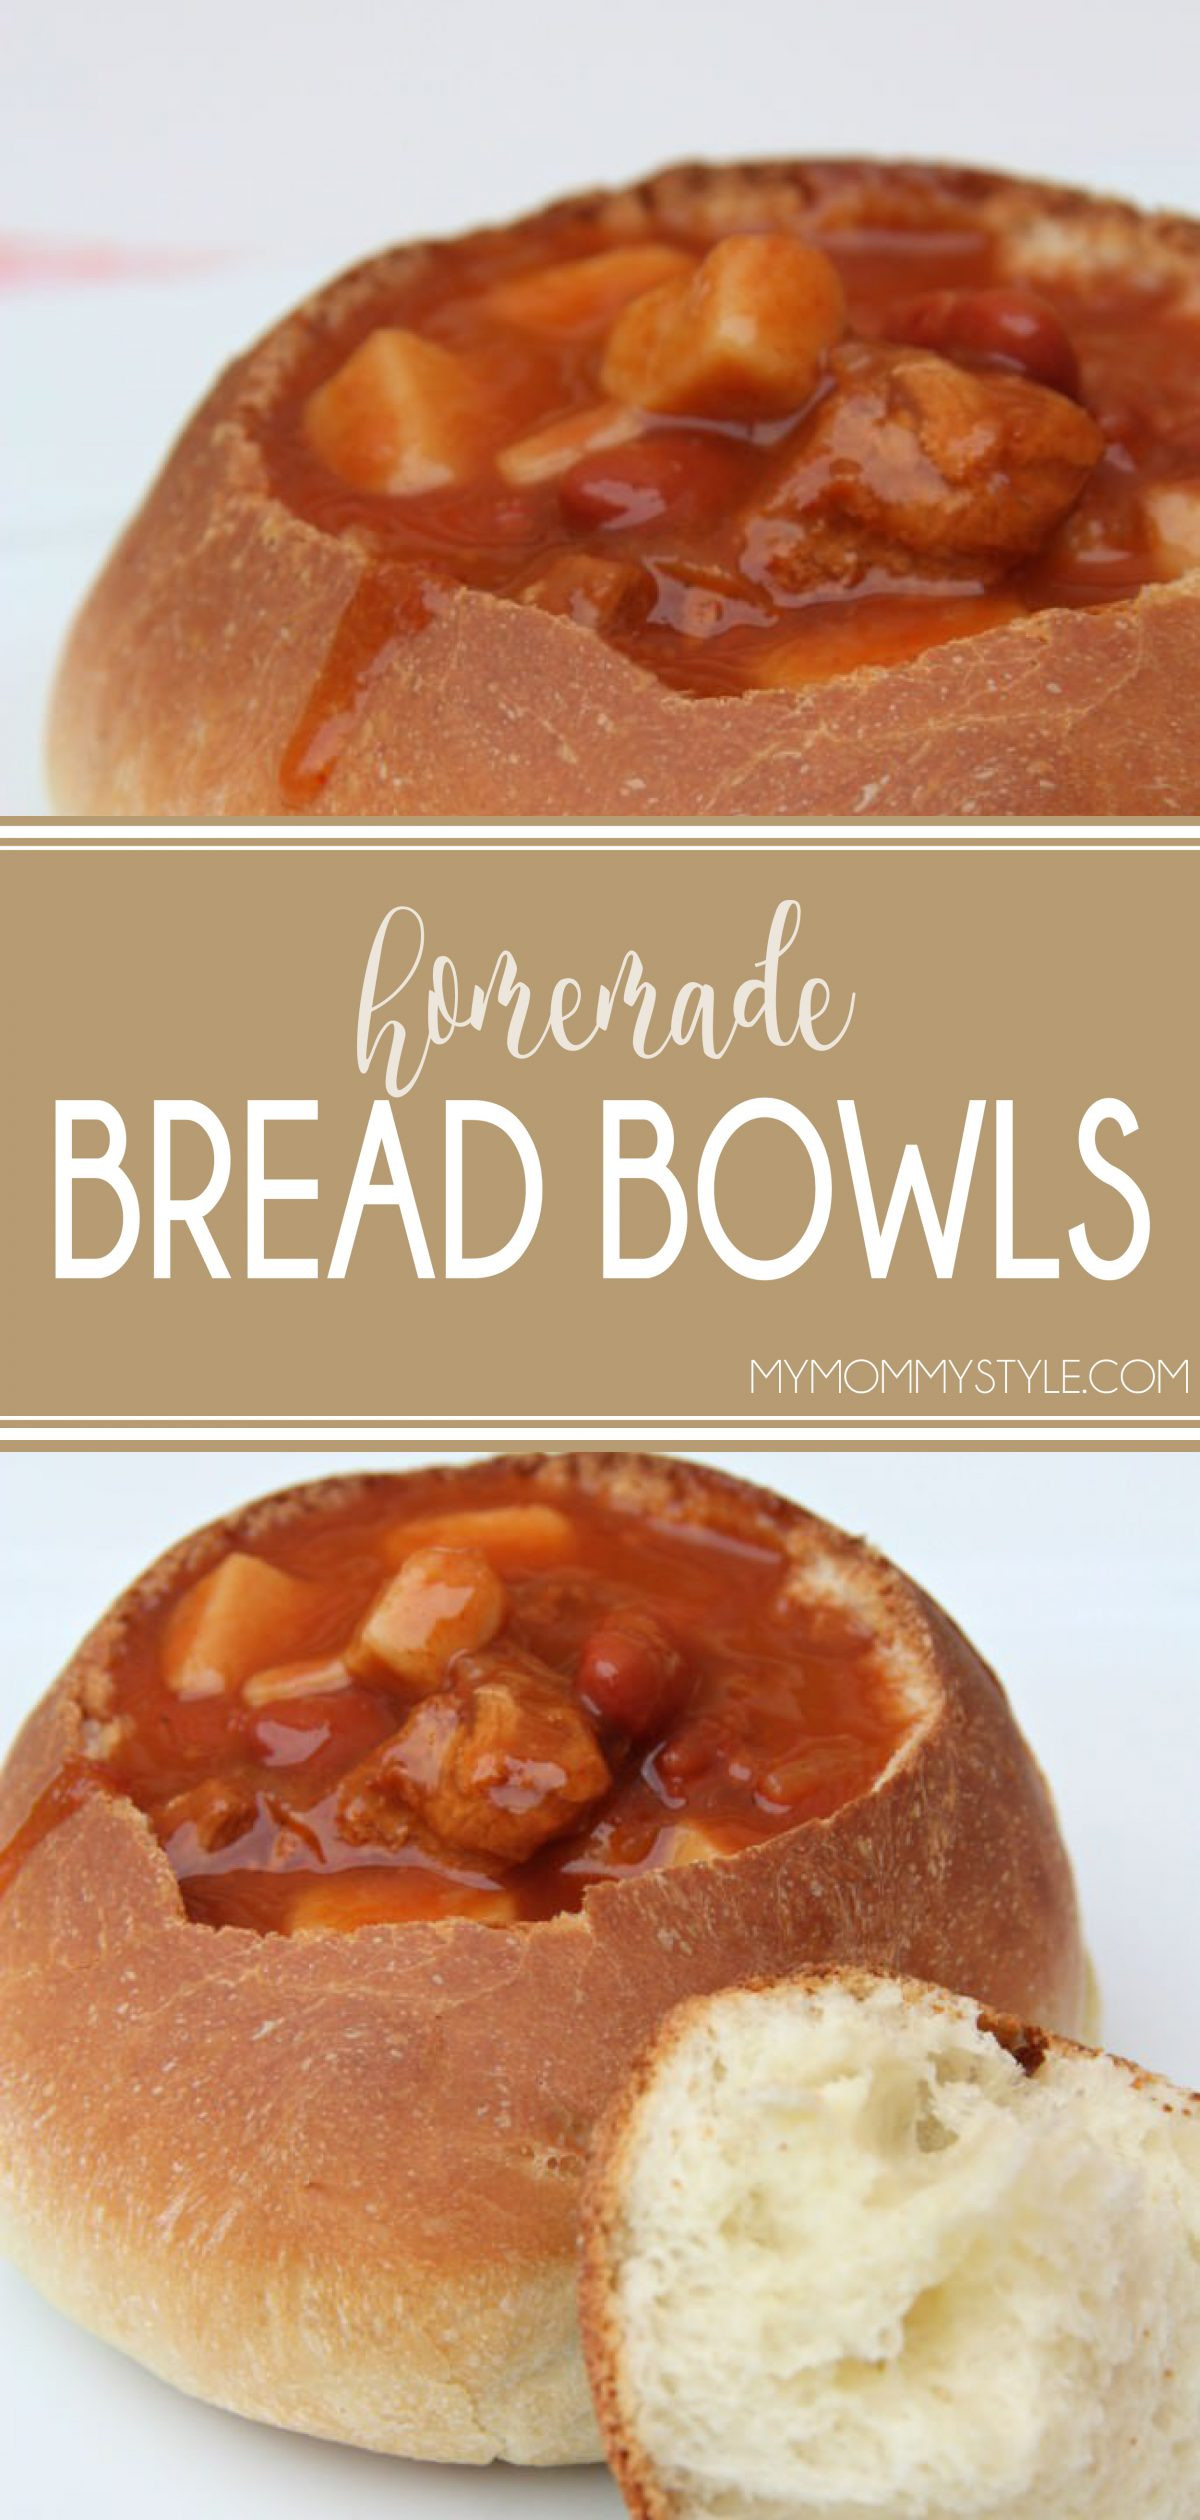 Every once in a while I like to serve the soup in a tasty bread bowl. This recipe makes 5 good sized bowls that are soft and chewy on the inside and crisp on the outside and sturdy enough to hold any of your favorite soups or stews. via @mymommystyle